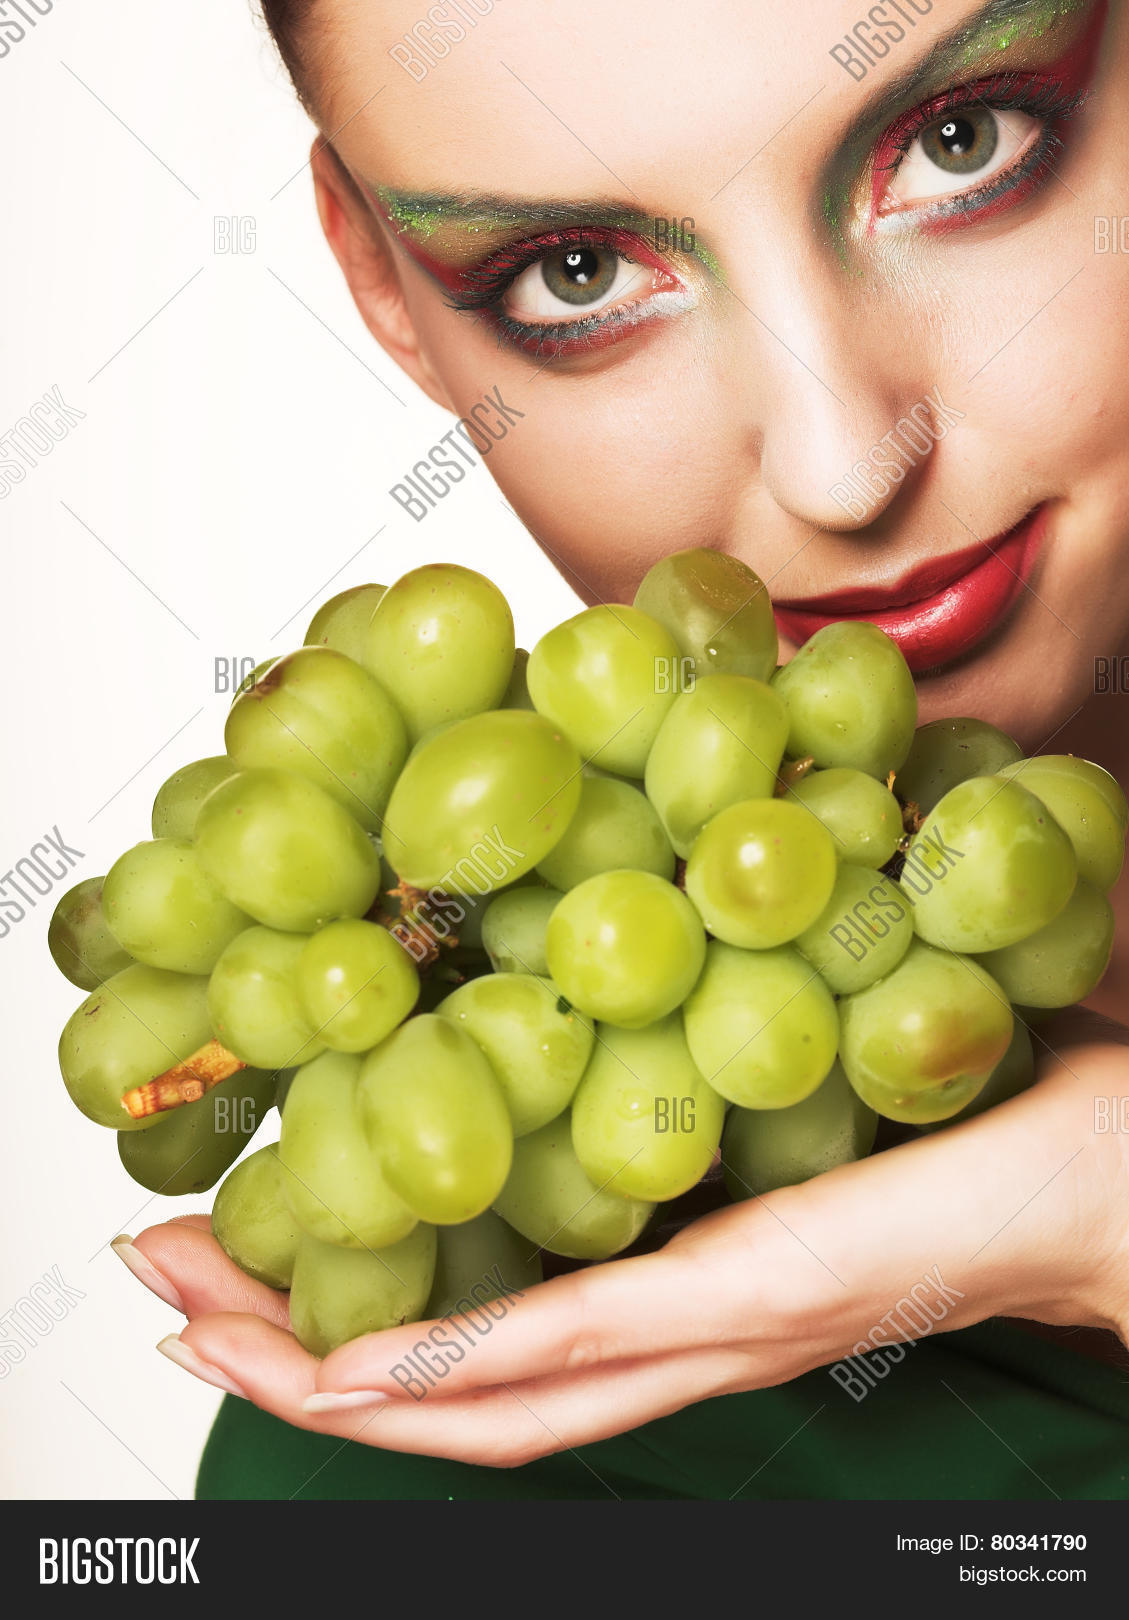 Woman Green Grapes Image Photo Free Trial Bigstock